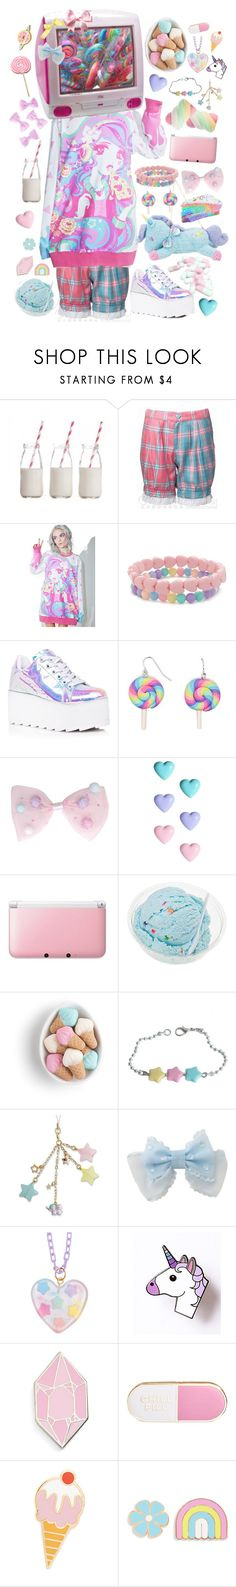 """""""sweet enough?"""" by pastellilapsi ❤ liked on Polyvore featuring Dress My Cupcake, KING, Japan L.A., Forever 21, Y.R.U., River Island, Nintendo, Meadham Kirchhoff, Big Bud Press and ban.do"""